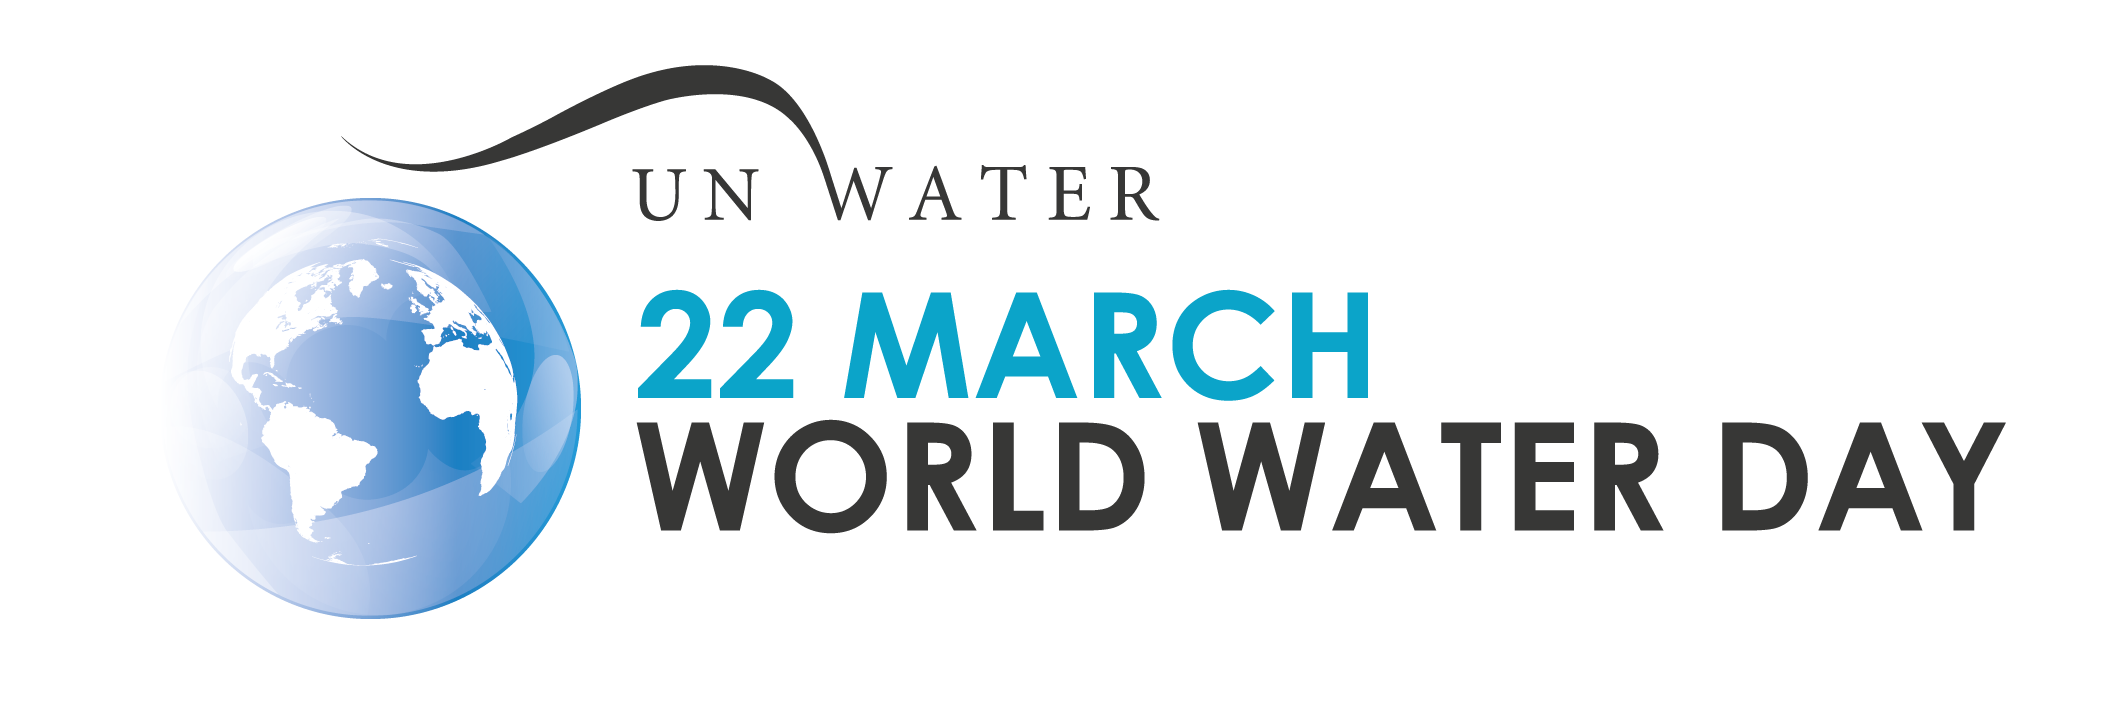 March 22 World Water Day with image of a globe.